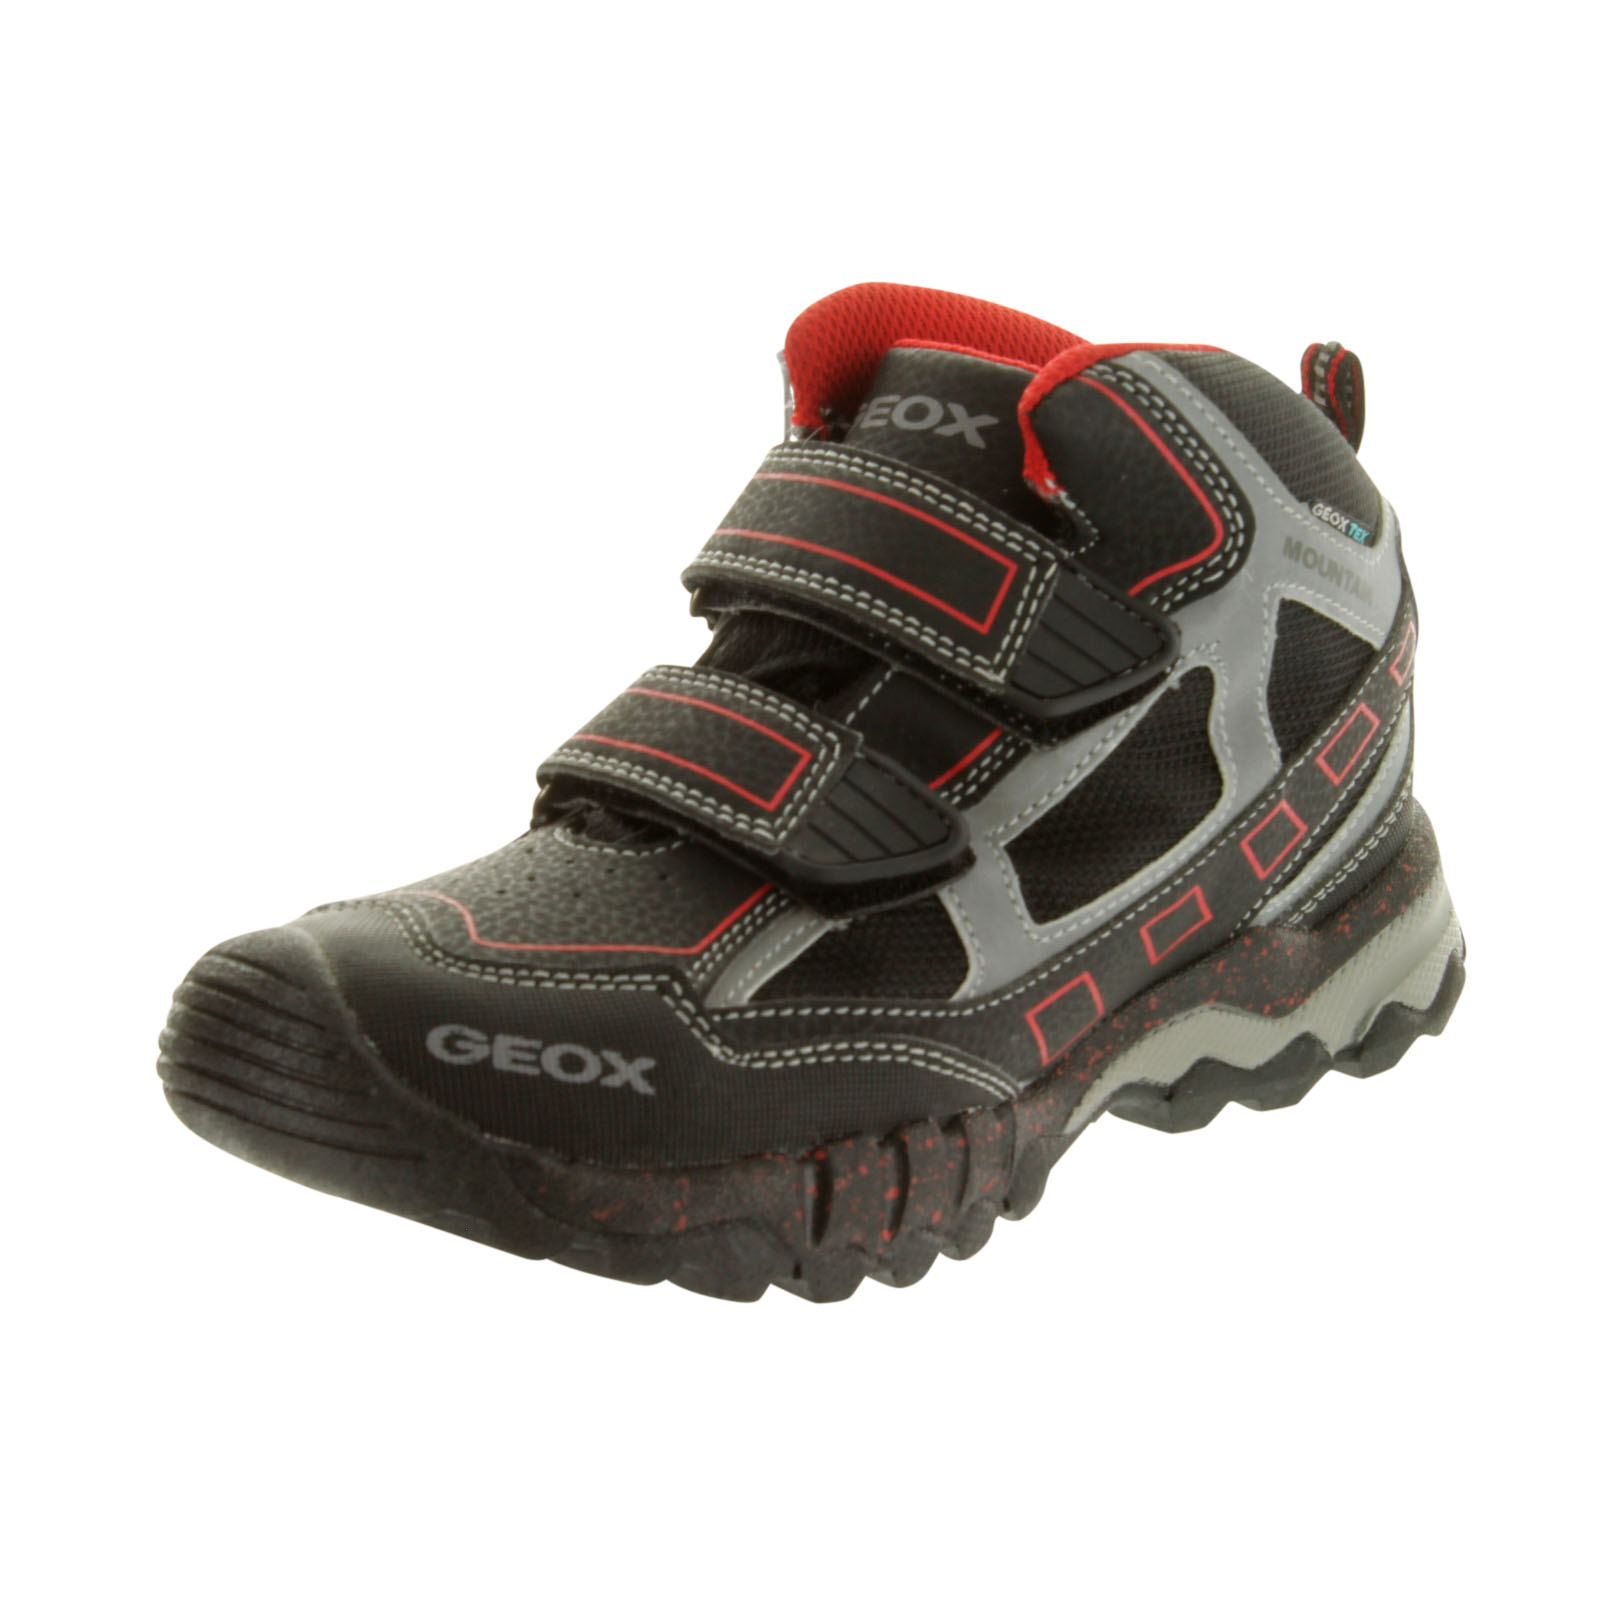 Wpf Boys' Mountain Sneakers Sneakers Boys' Geox